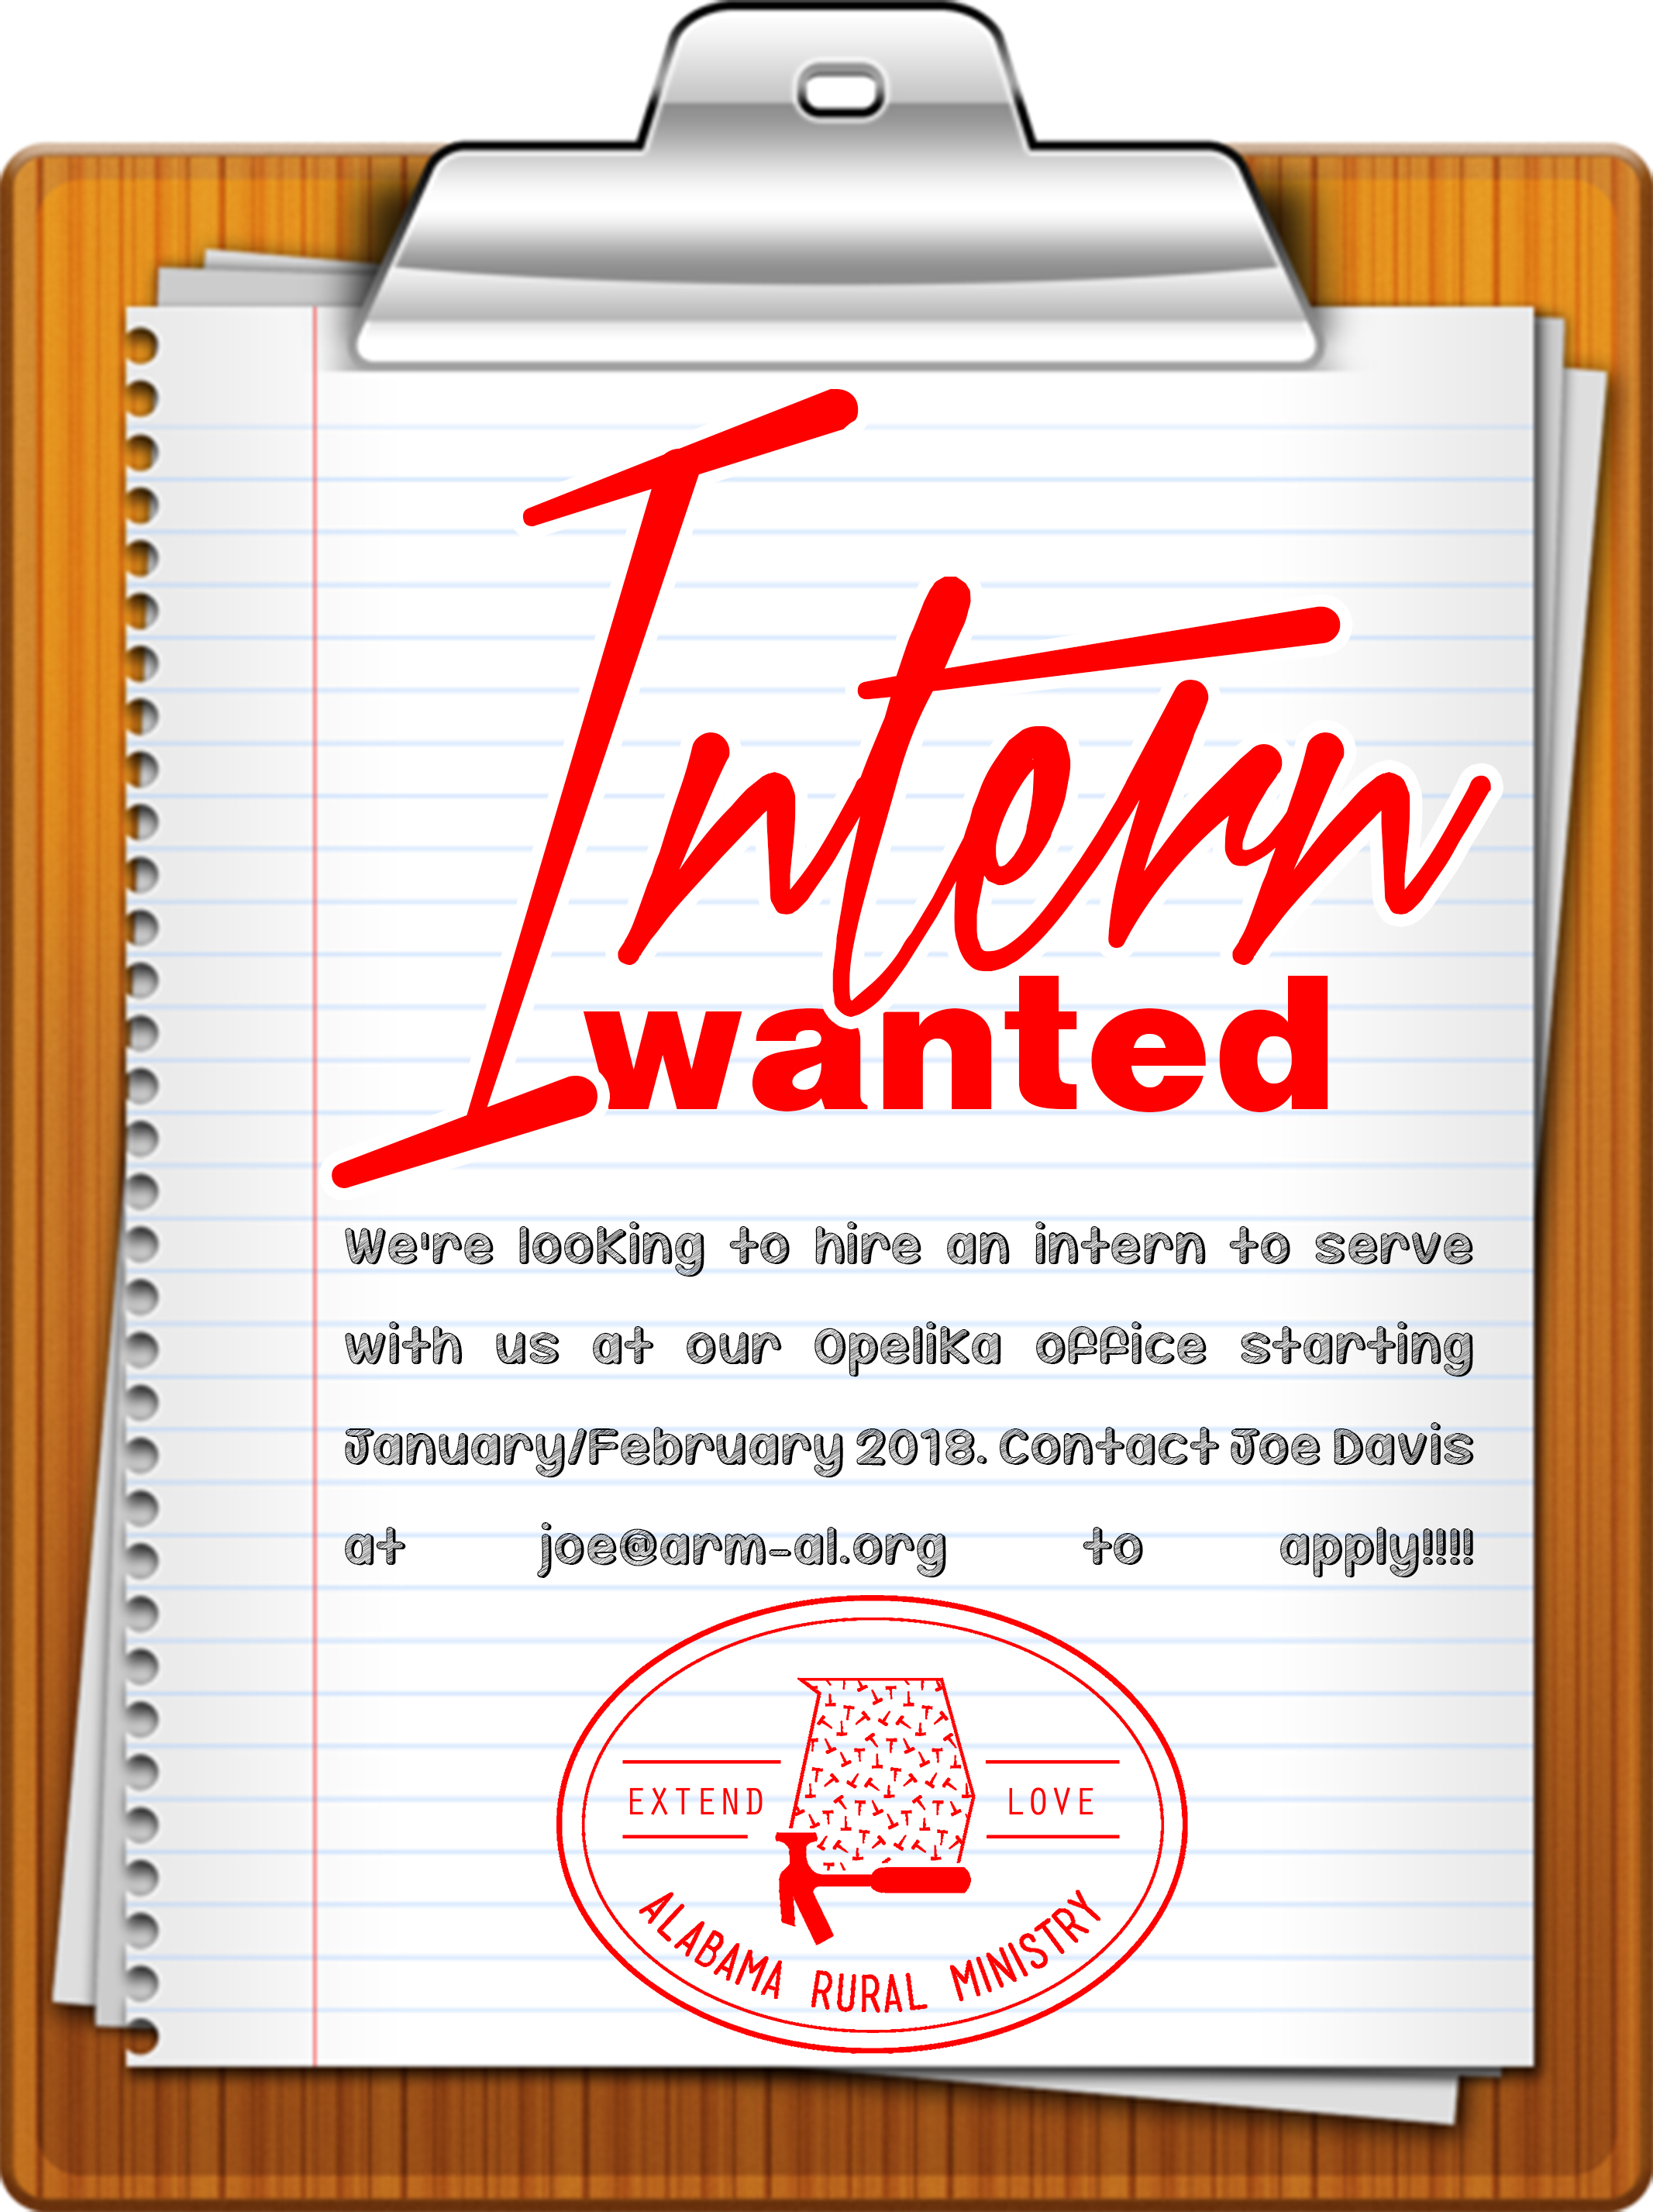 were excited to announce that we are looking for an intern to serve with us beginning januaryfebruary 2018 at our opelika office